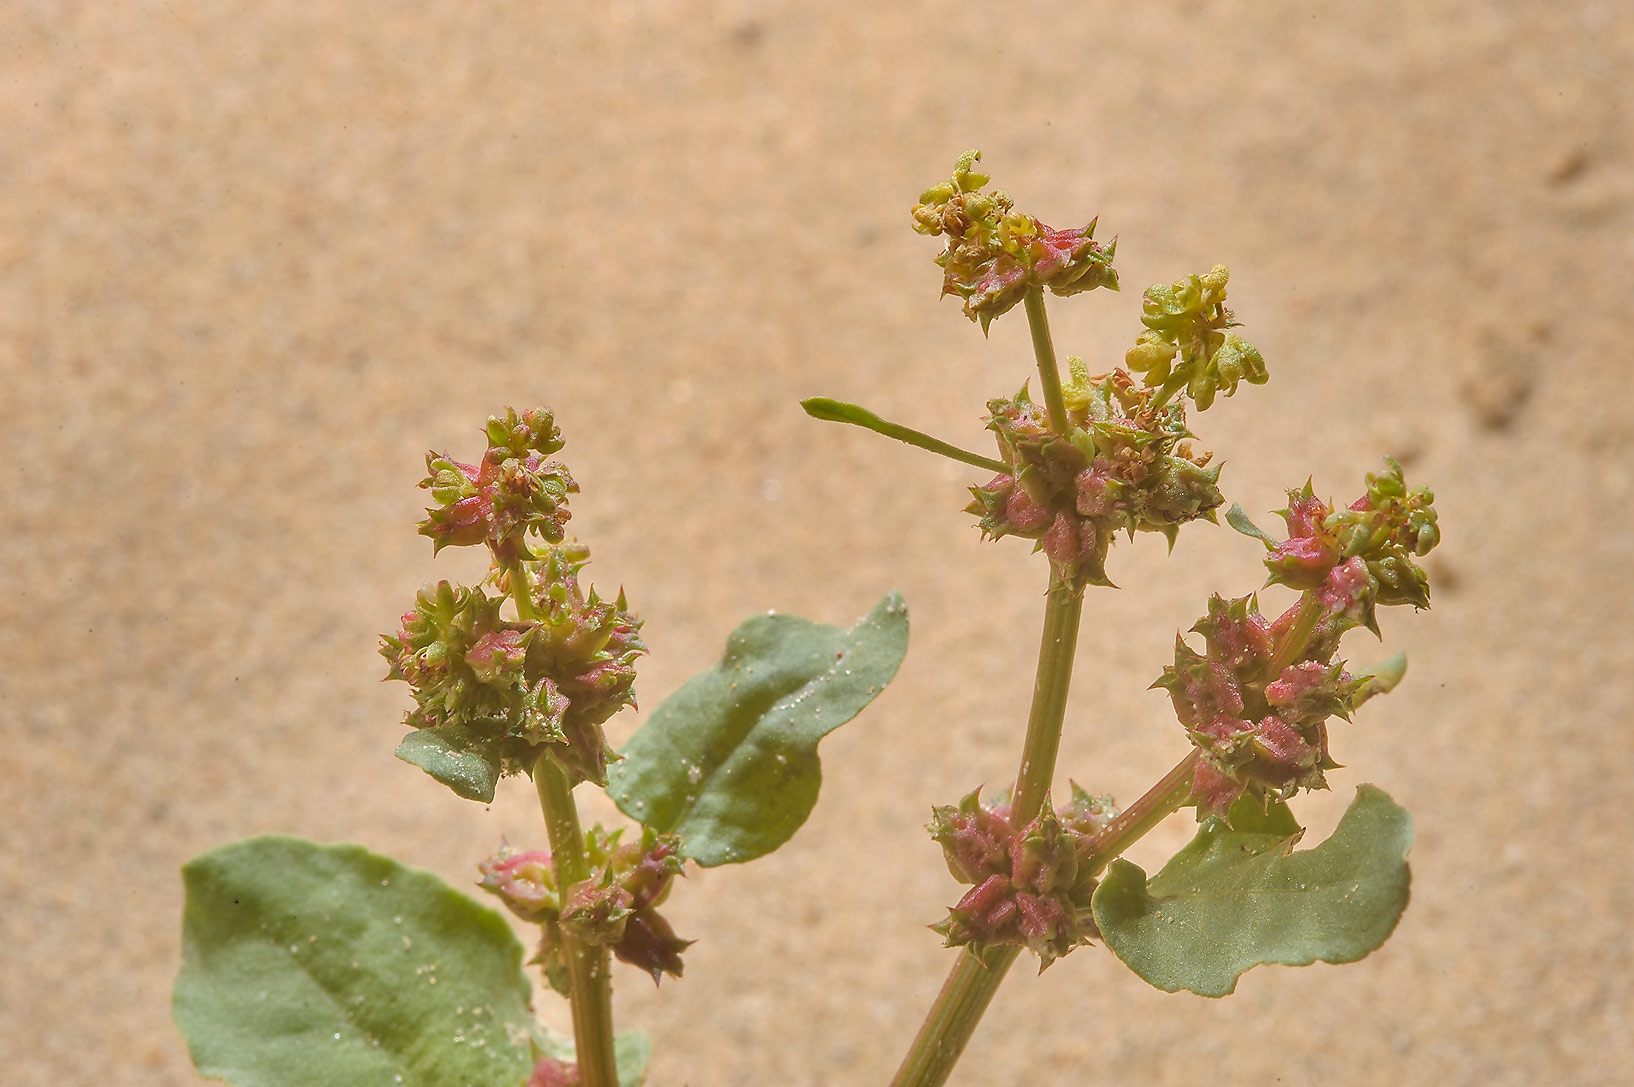 Prickly Dock (Emex spinosa, Rumex spinosus, local...in sand near Trainah in southern Qatar